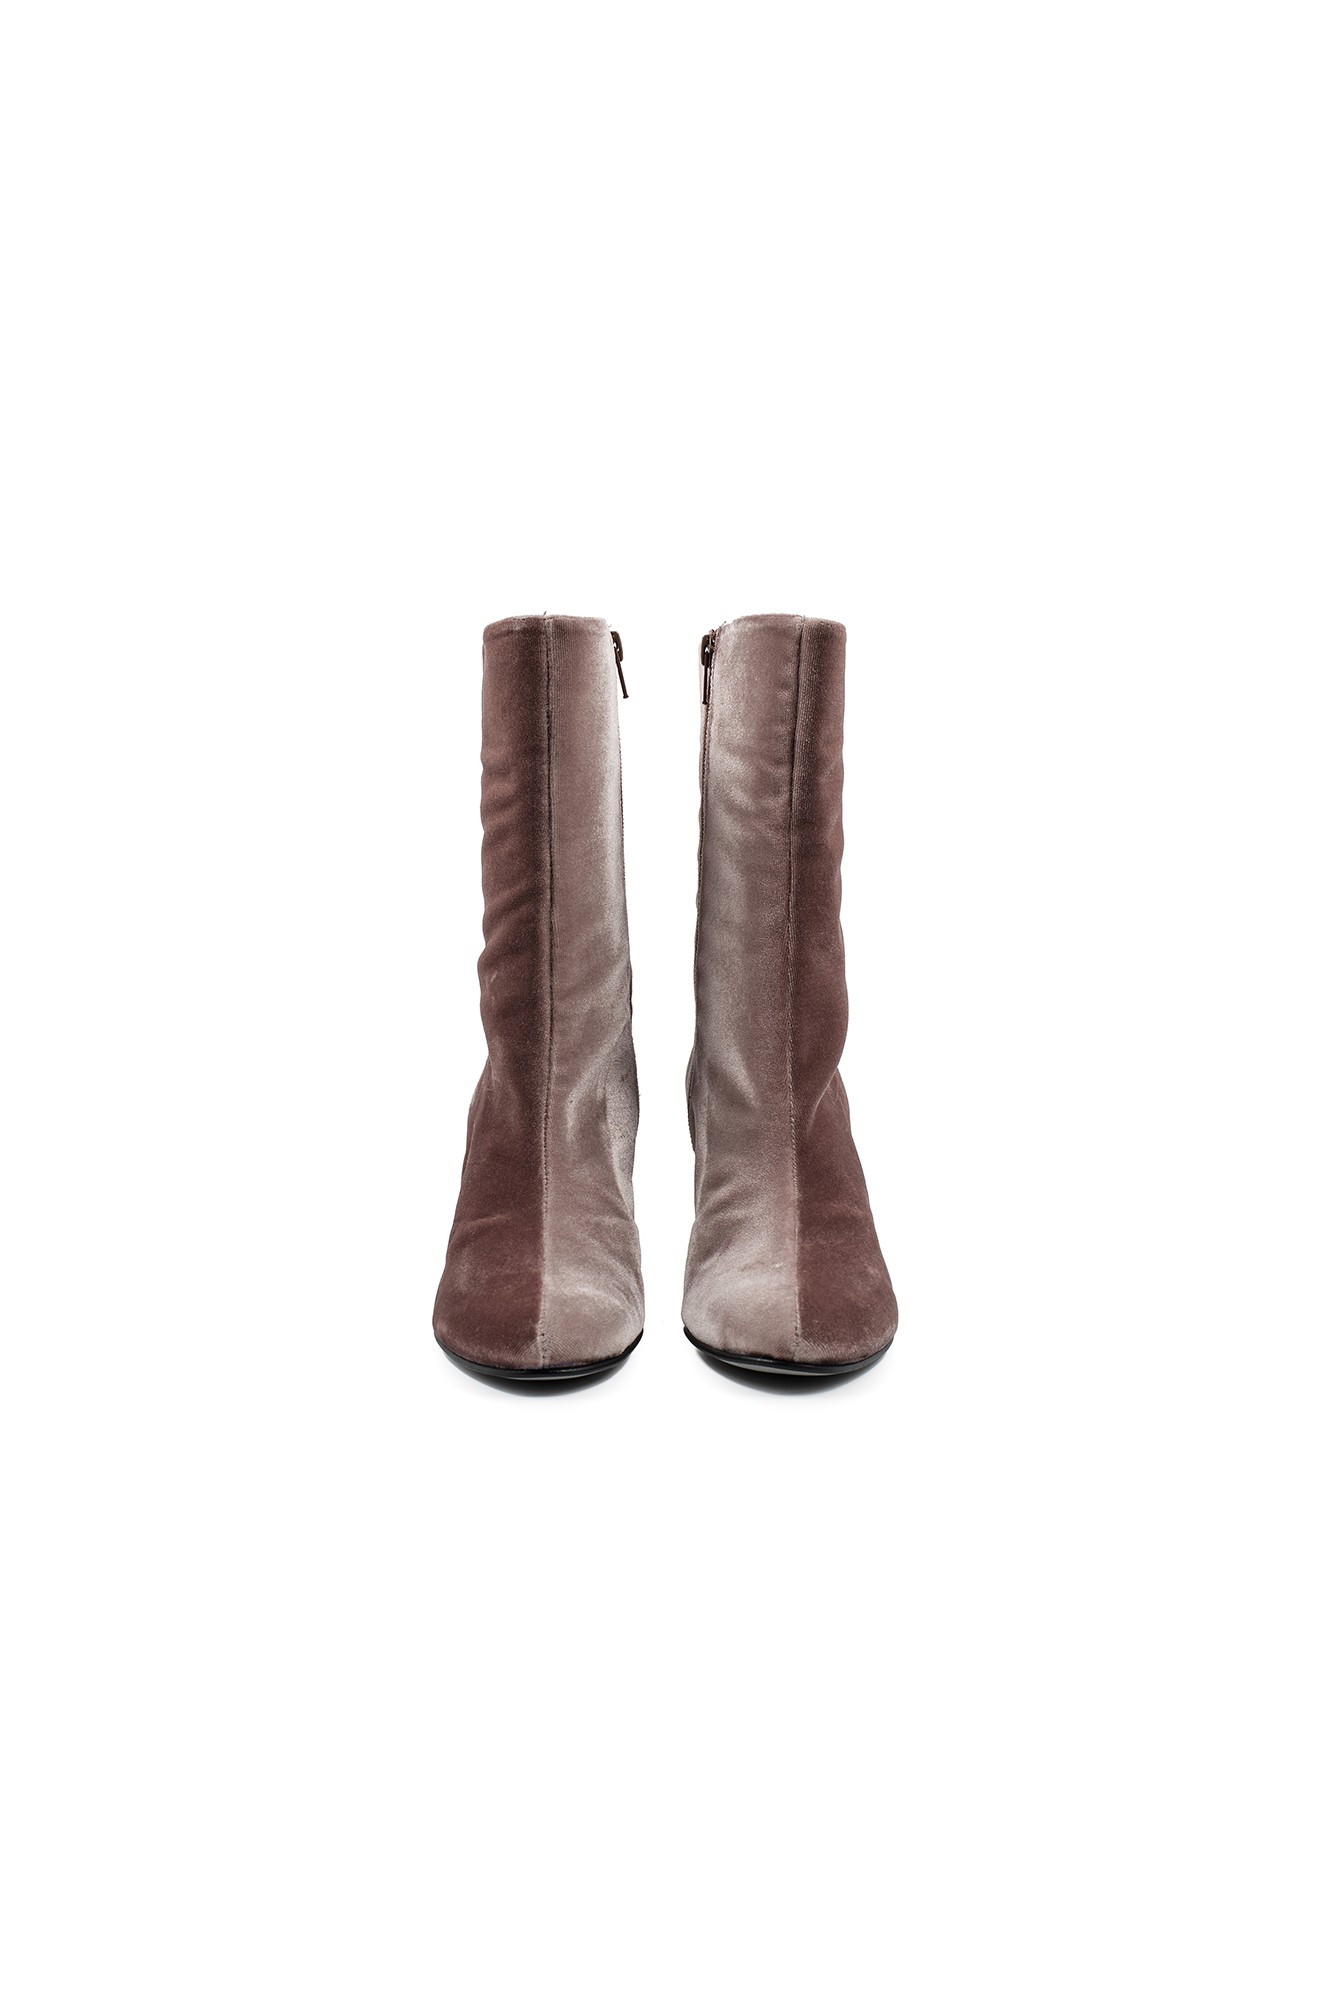 MOCCA PINK BOOTS